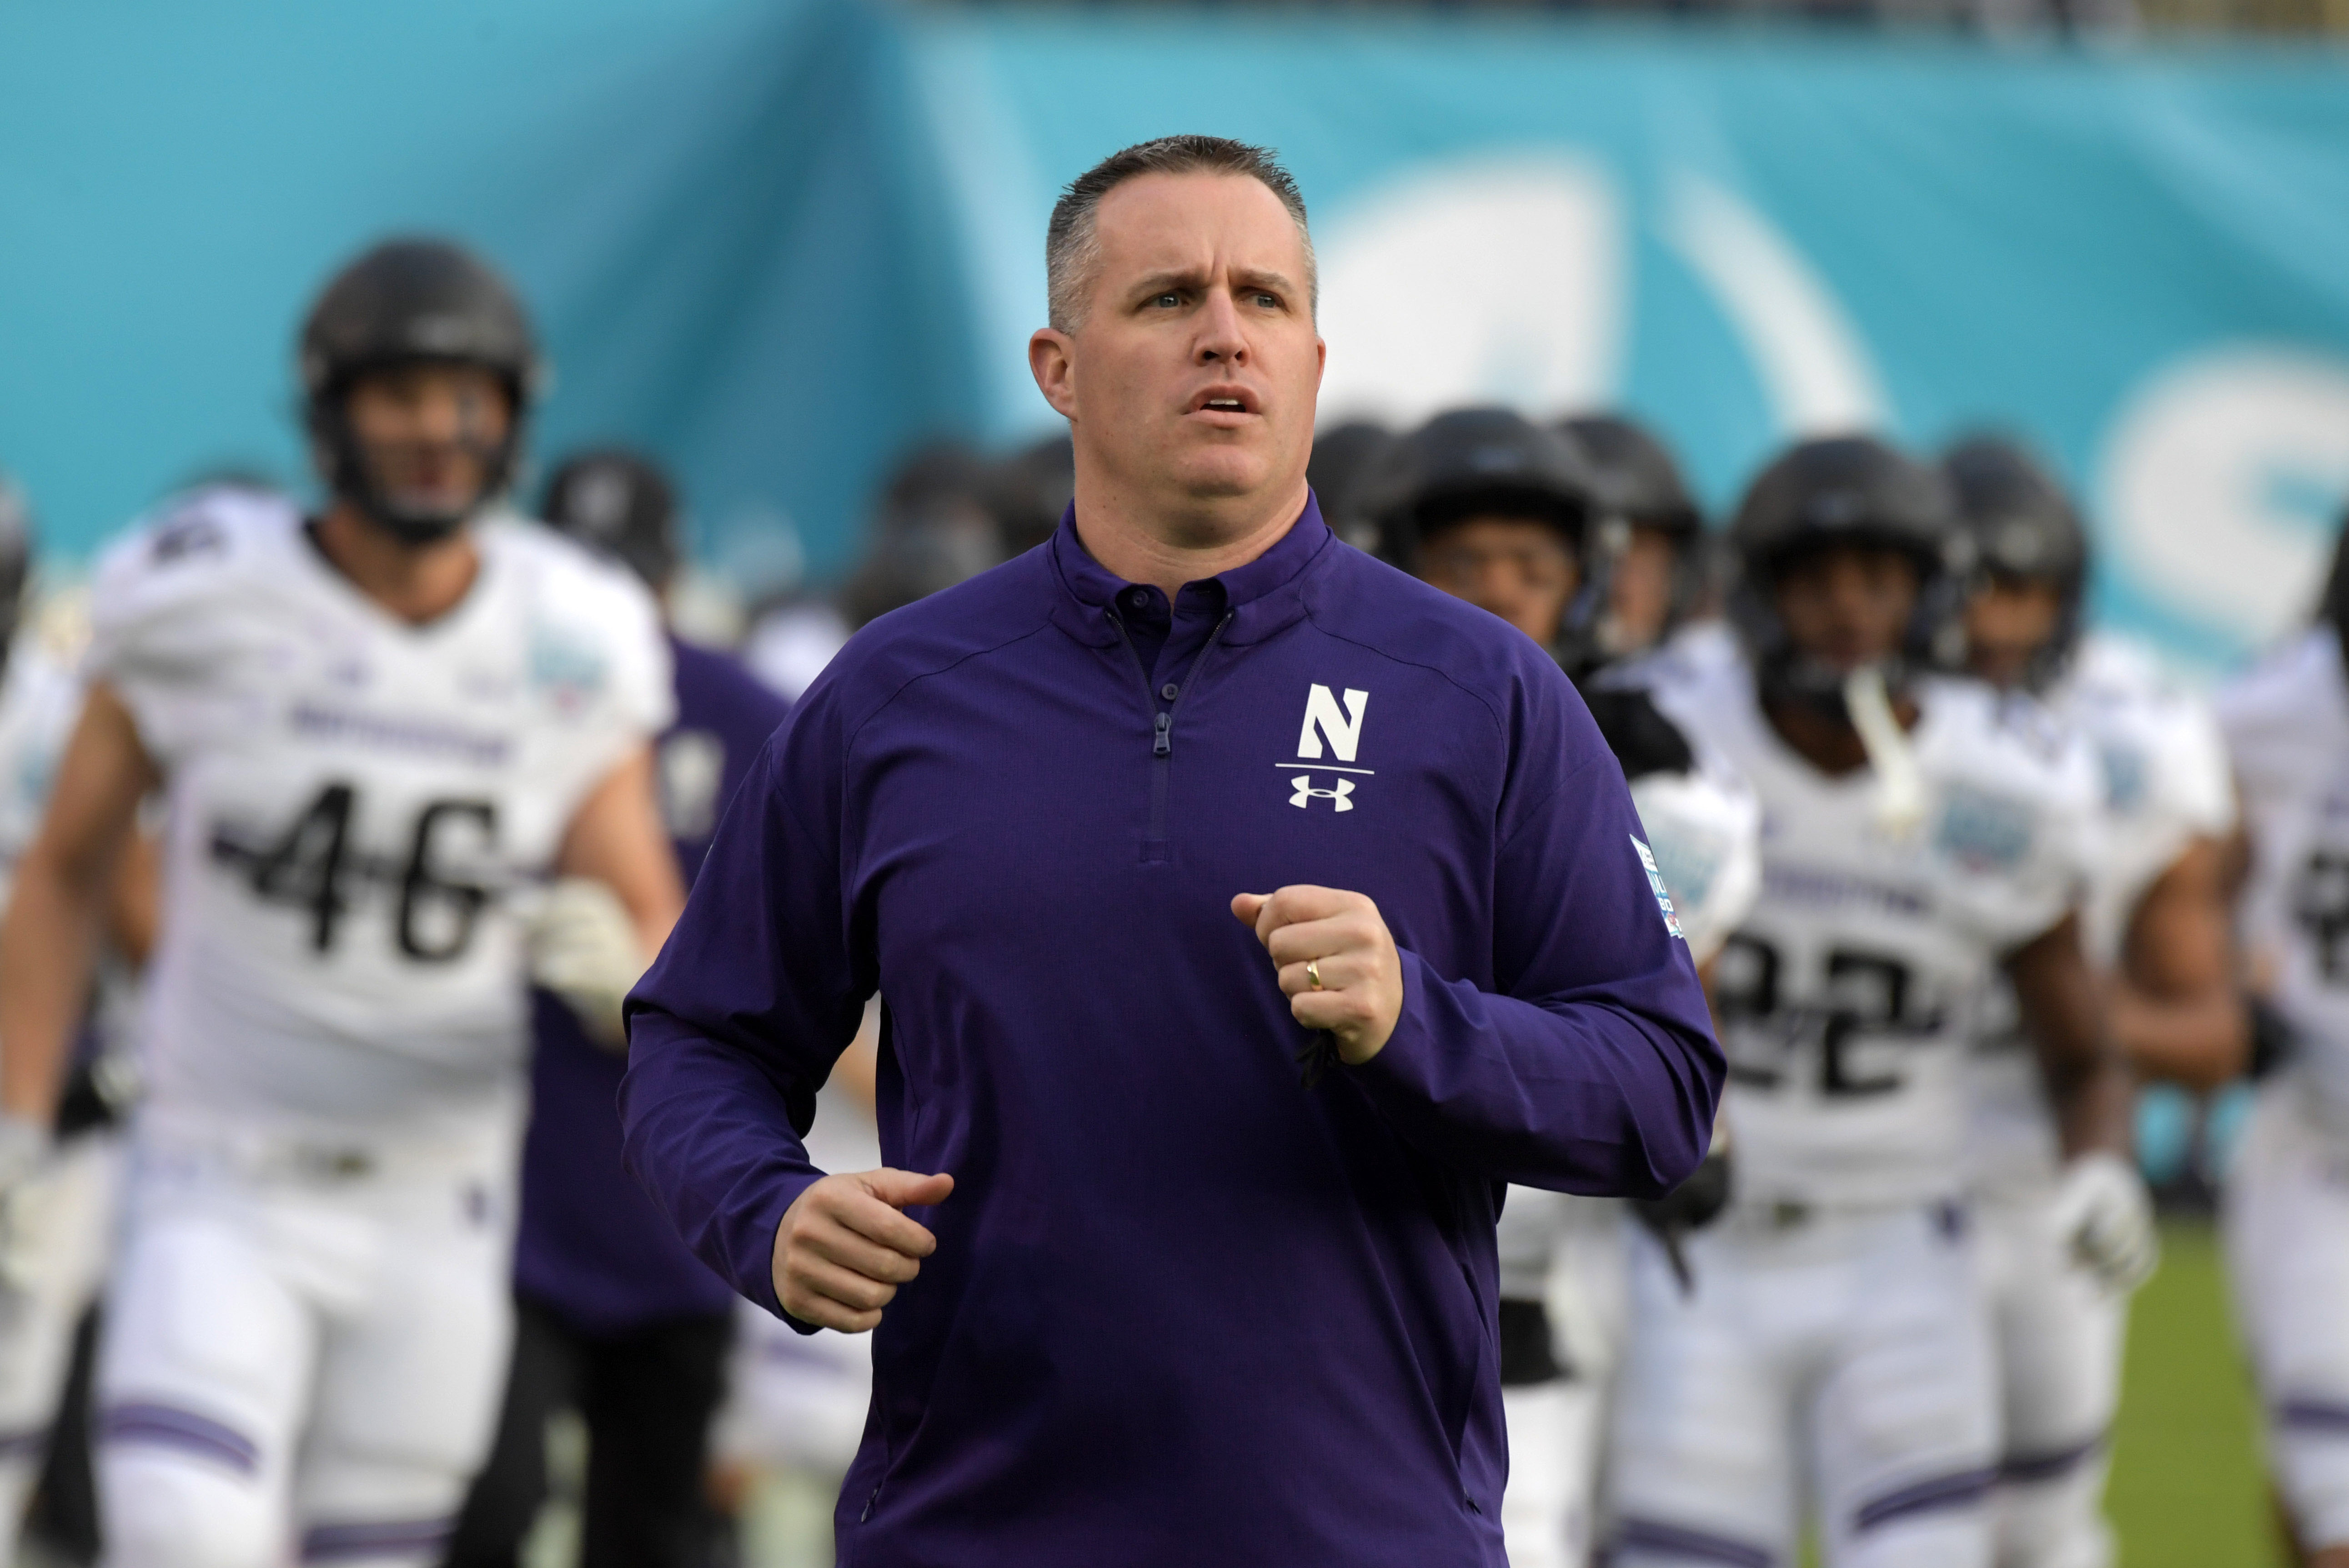 Perfect score: Northwestern becomes first FBS program to accomplish outstanding academic feat